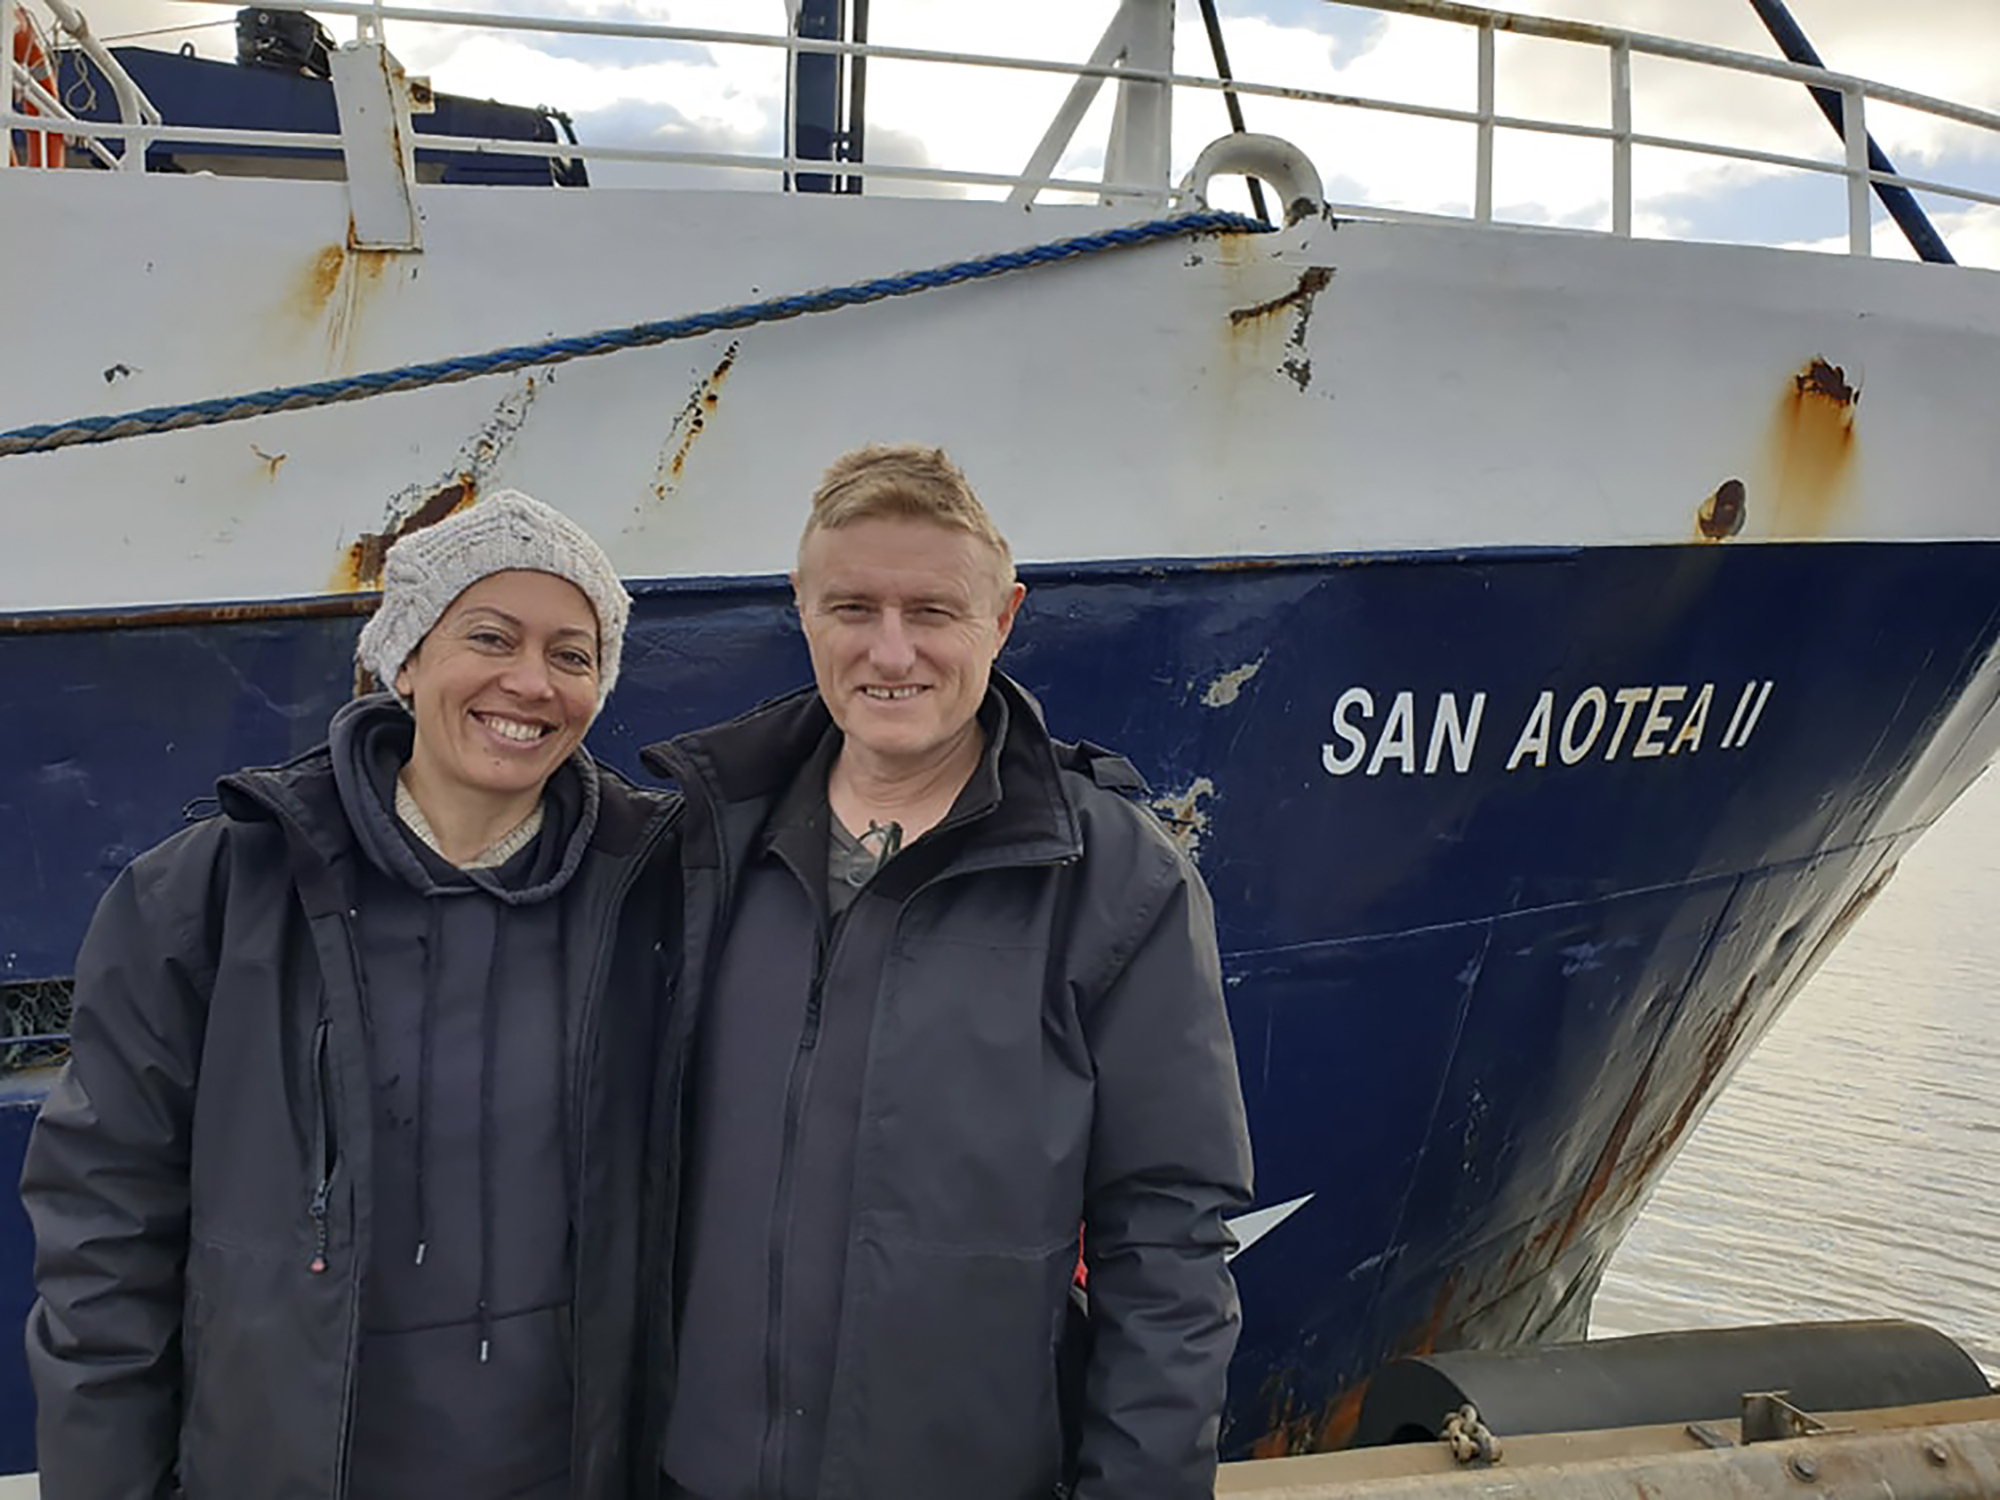 In this July 2020, photo supplied by Feeonaa and Neville Clifton, Neville and Feeonaa Clifton are pictured by the San Aotea II fishing boat in the Falkland Islands. The Cliftons, a honeymoon couple who were stranded on the remote Falkland Islands in March because of the coronavirus have managed to get home to New Zealand, Tuesday Aug. 4, 2020 by hitching a lift of more than 5,000 nautical miles (9,200 kilometers) on an Antarctic fishing boat.